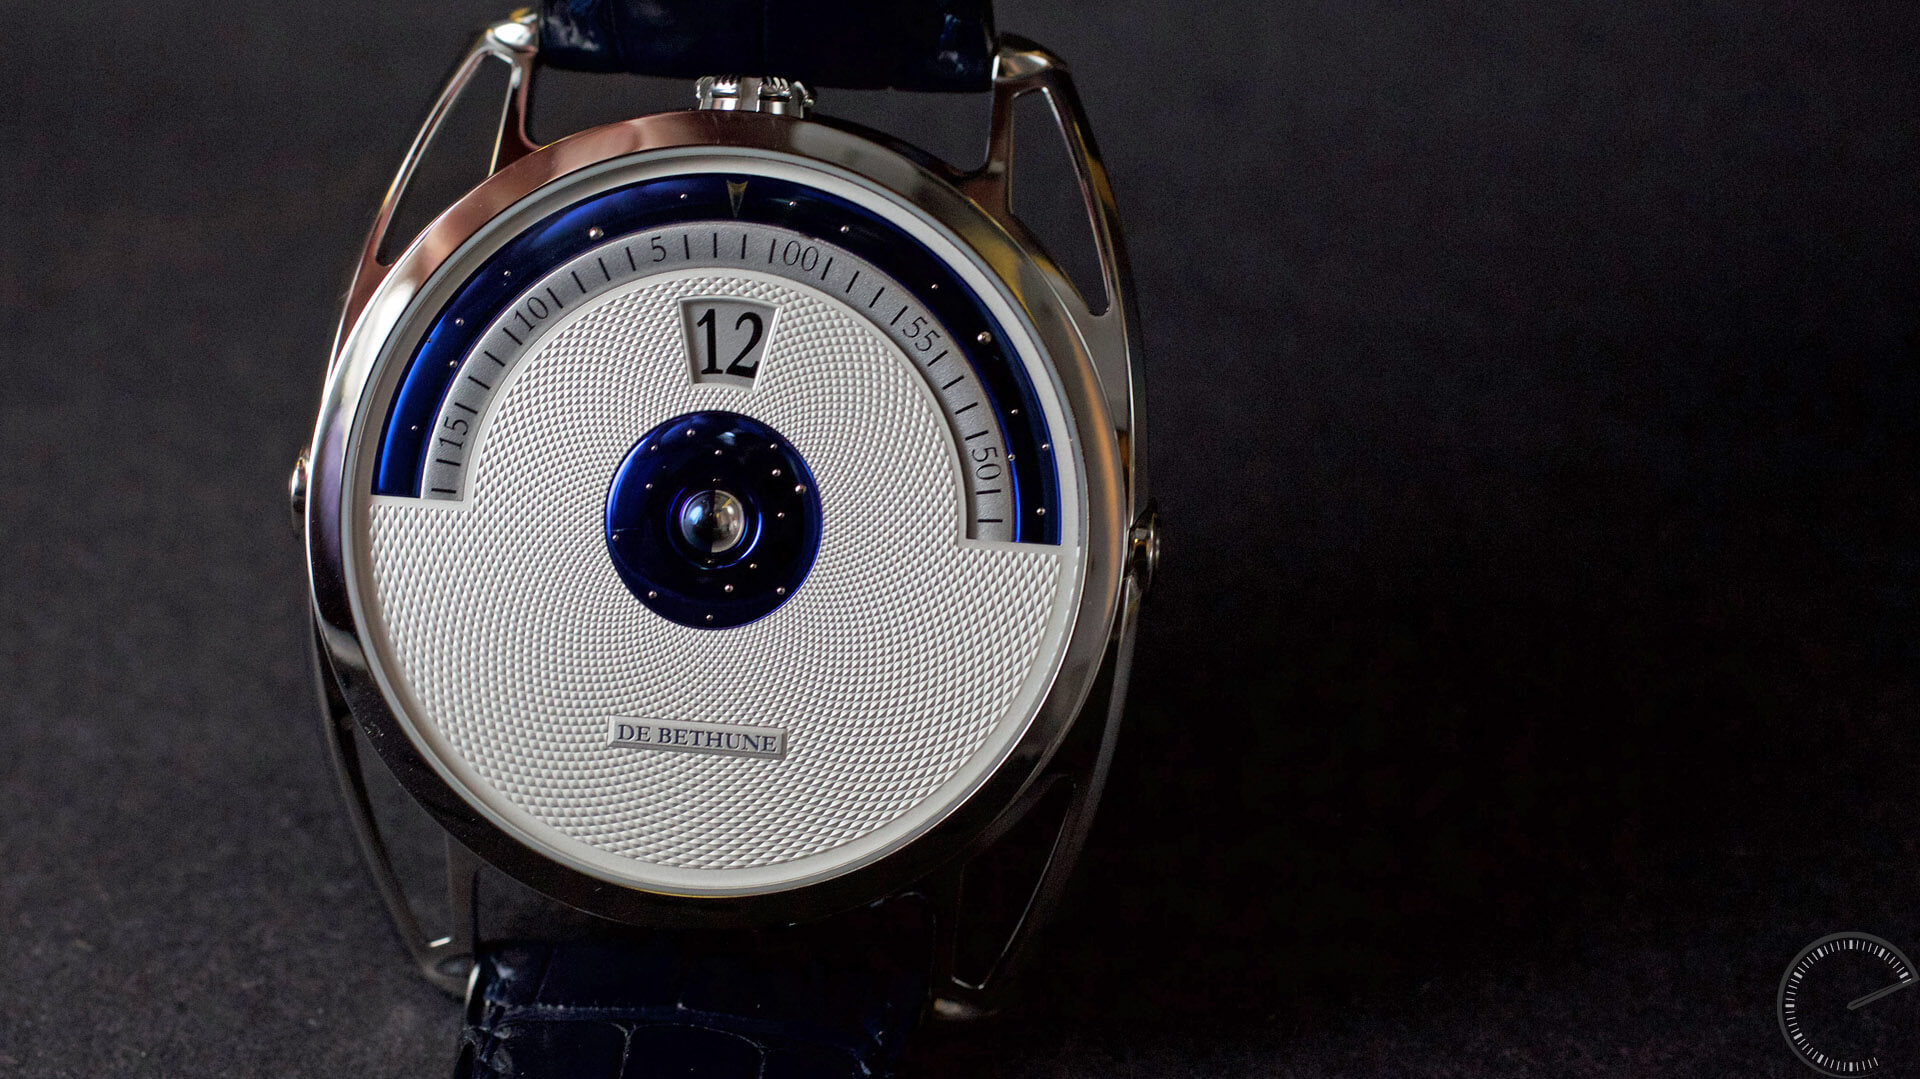 De_Bethune_DB28_Digitale_dial - ESCAPEMENT watch reviews by Angus Davies